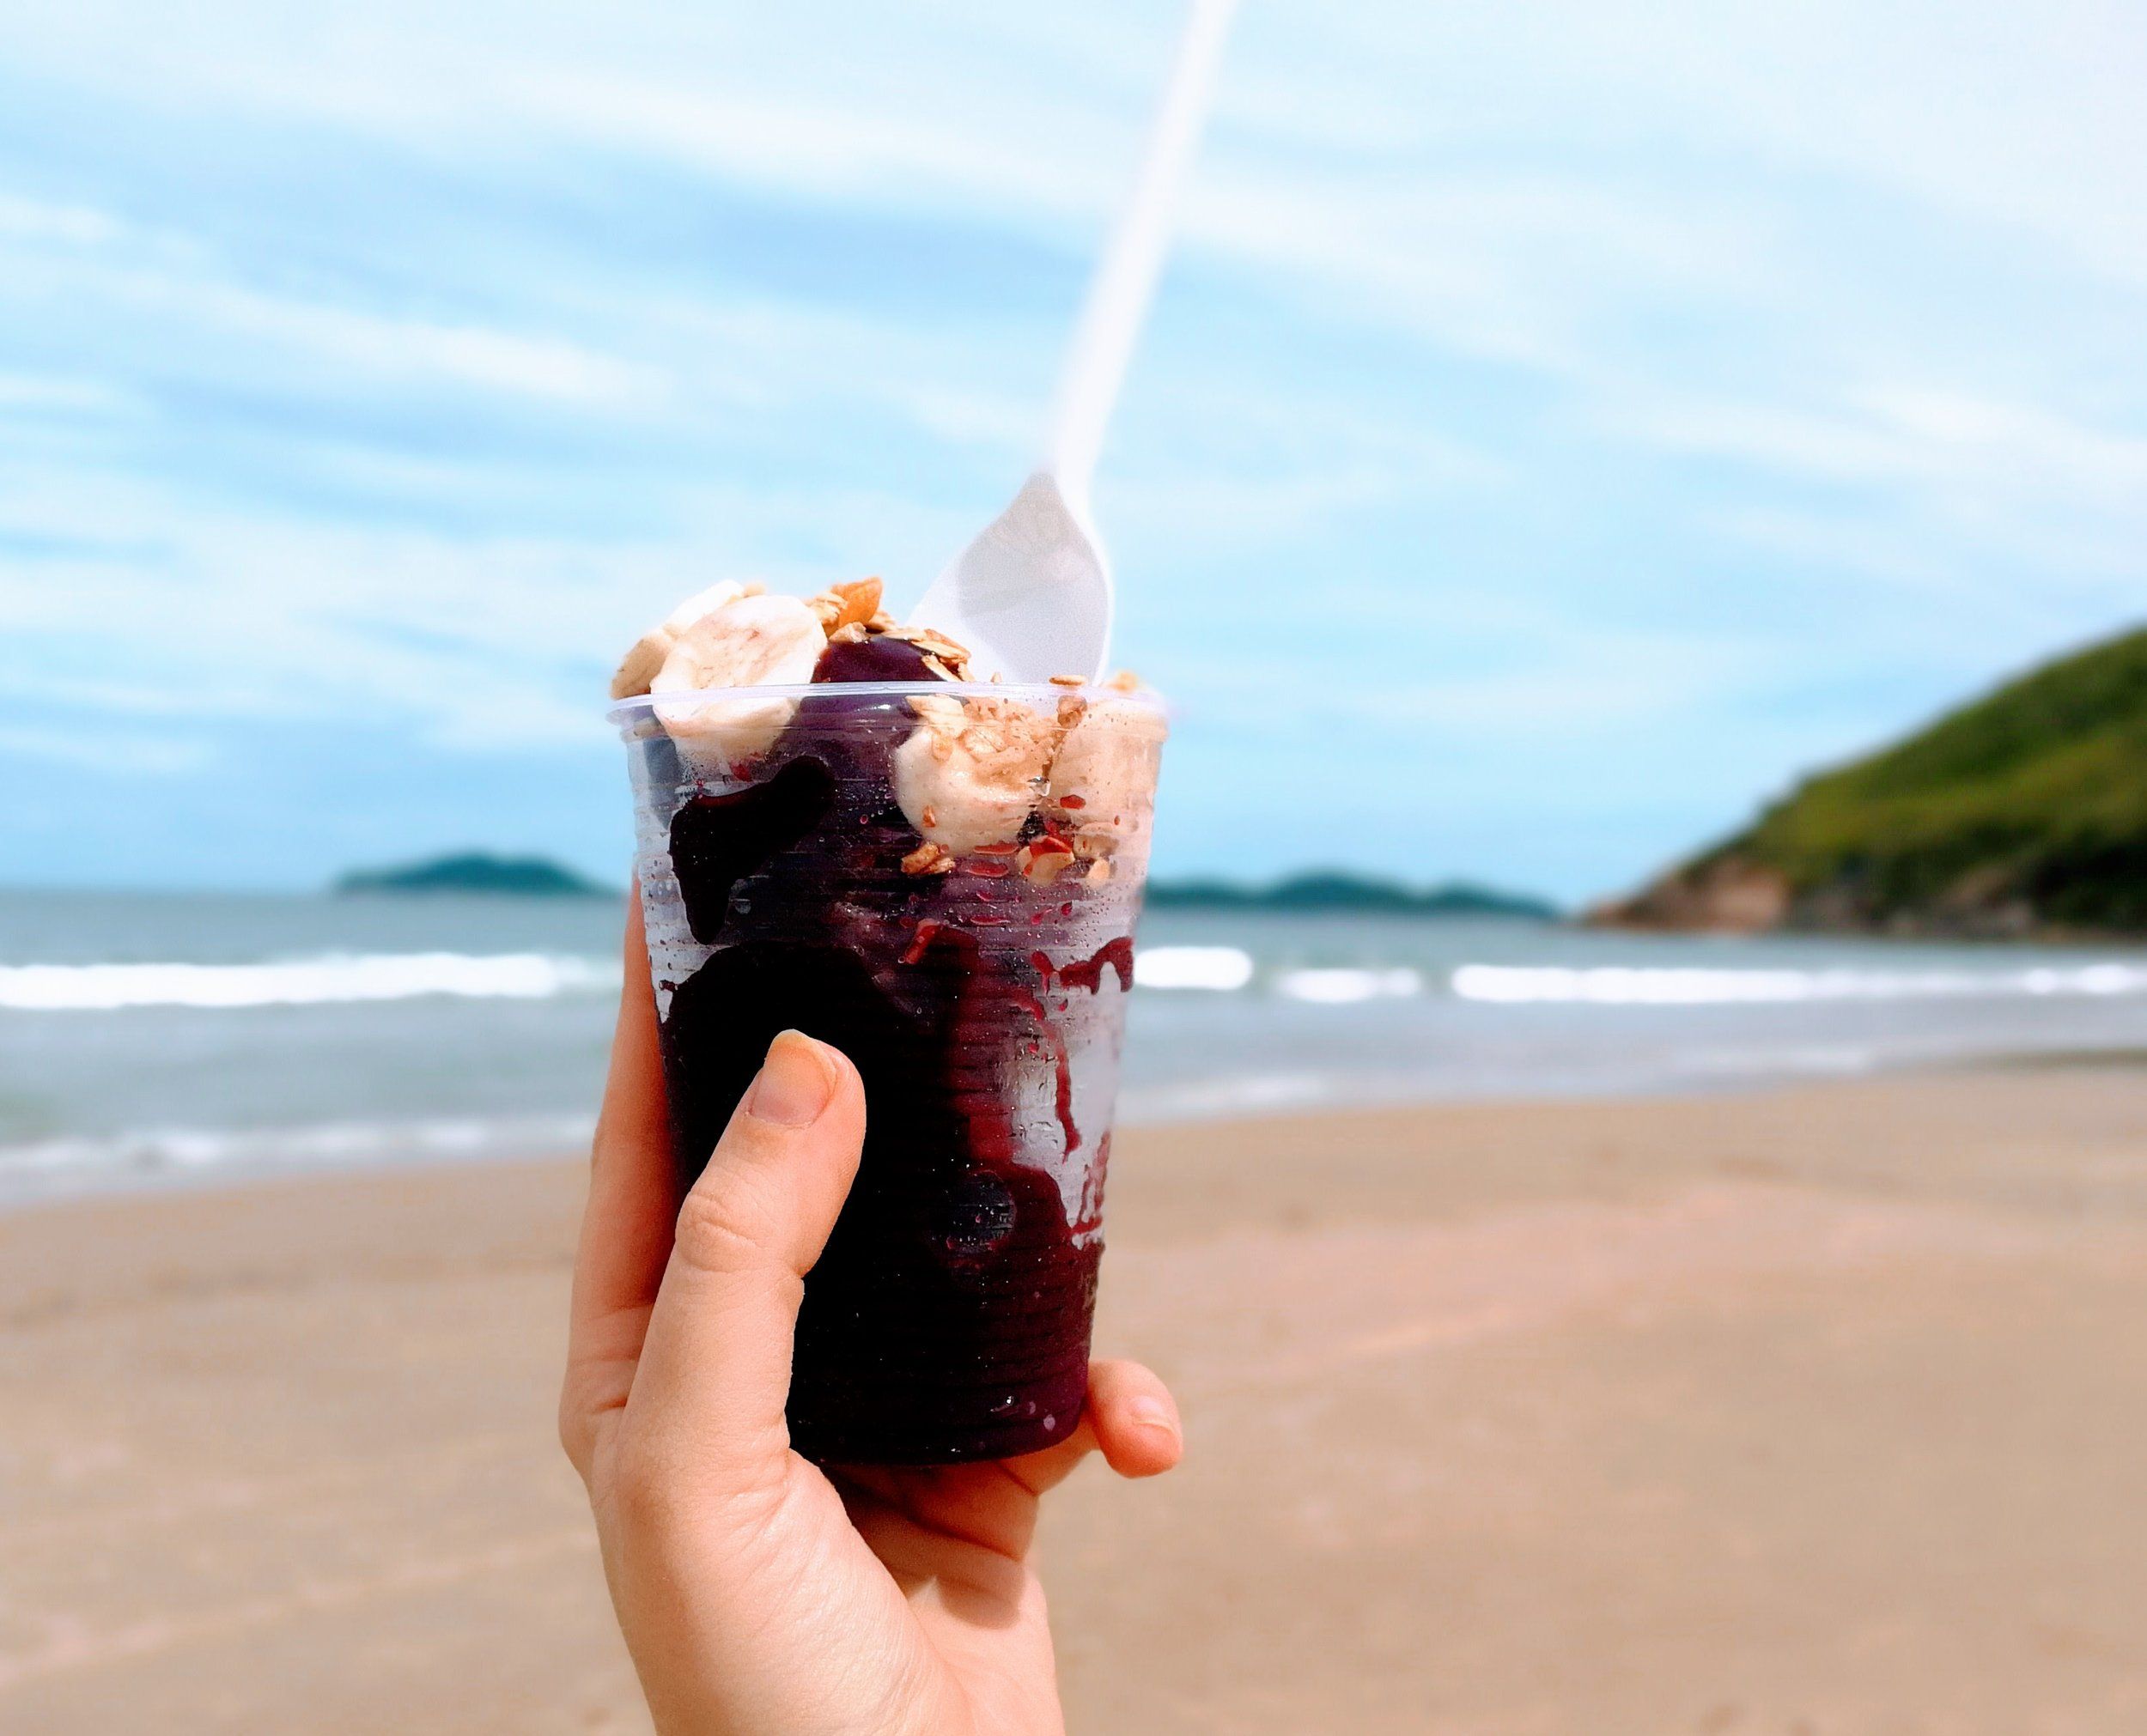 About Açaí - Açaíis a typical Brazilian snack made of frozen açaí fruit. It is served as a smoothie and is commonly topped with granola, banana, and guarani syrup.